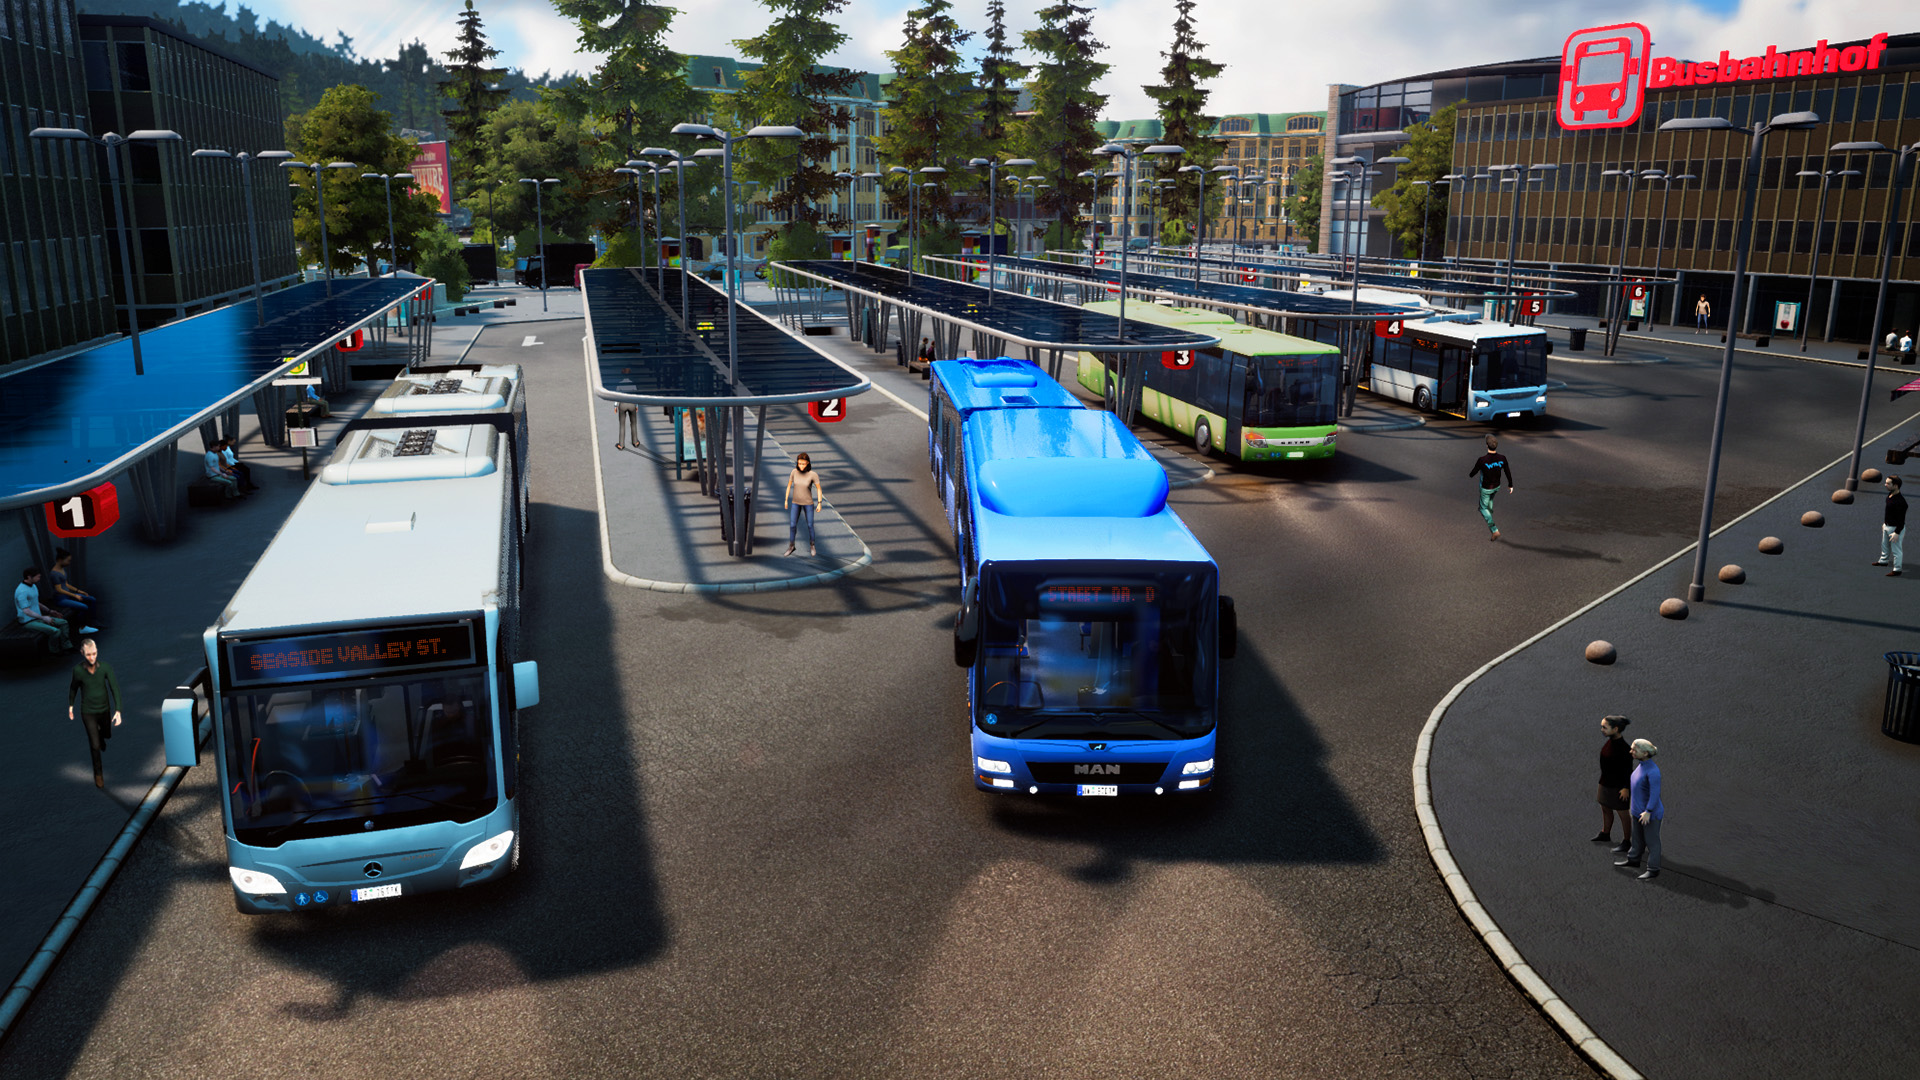 Bus Simulator 18 (astragon Entertainment GmbH) (RUS|ENG|MULTi12) [Steam-Rip] vano_next